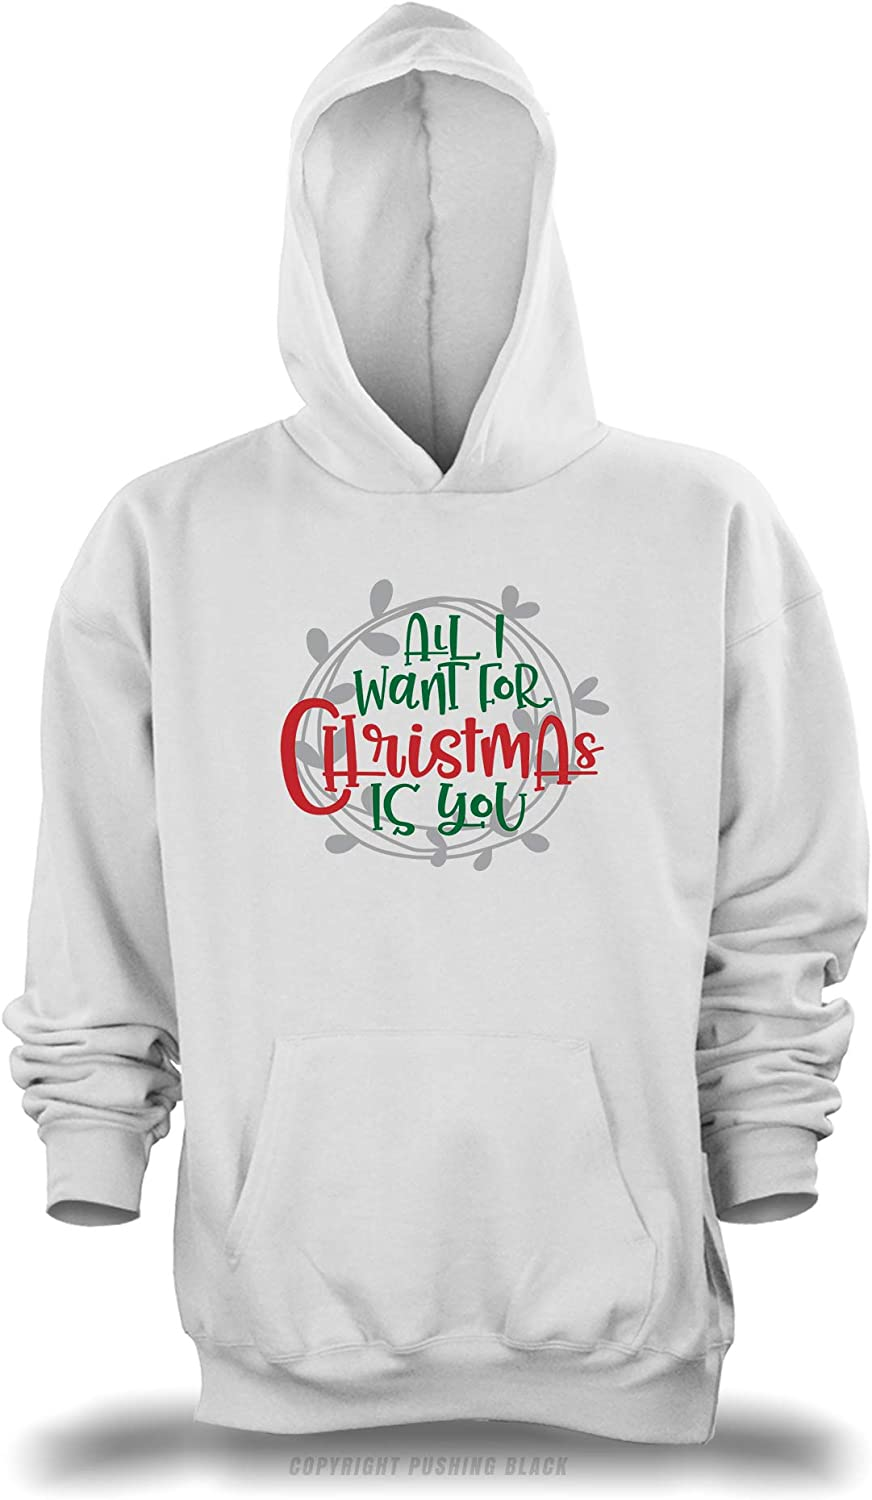 , 3XL Gildan PUSHING BLACK All I Want for Christmas for You Unisex Pullover Hoodie White